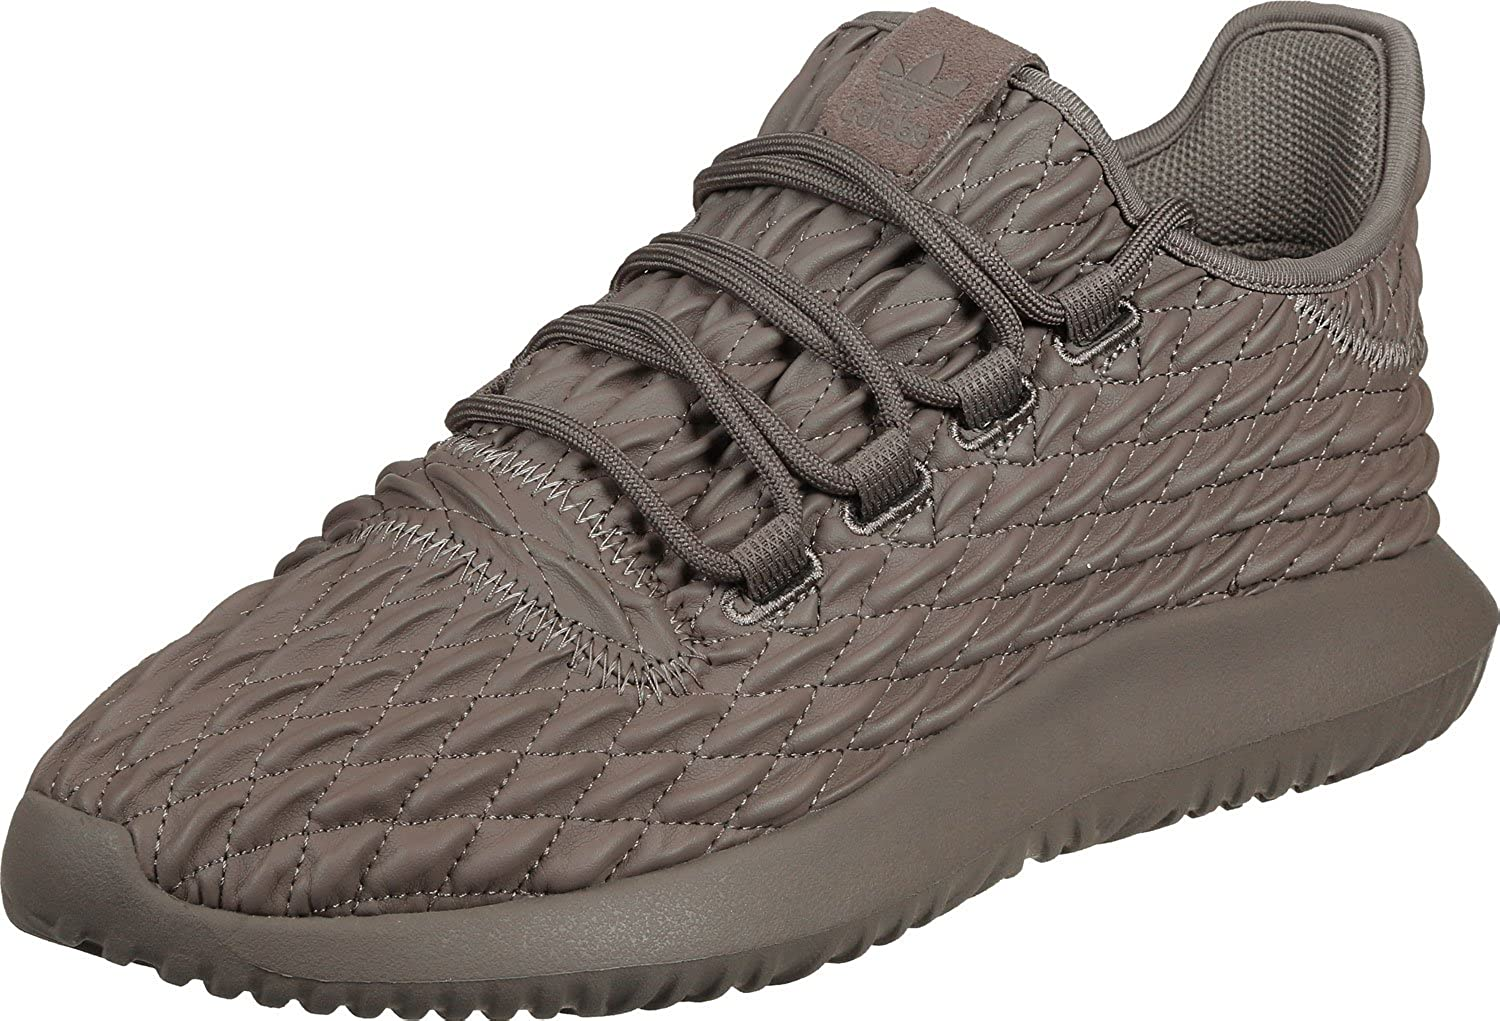 new product e1895 58b2b Adidas Tubular Shadow Shadow Shadow Herren Turnschuhe Braun 812fb5